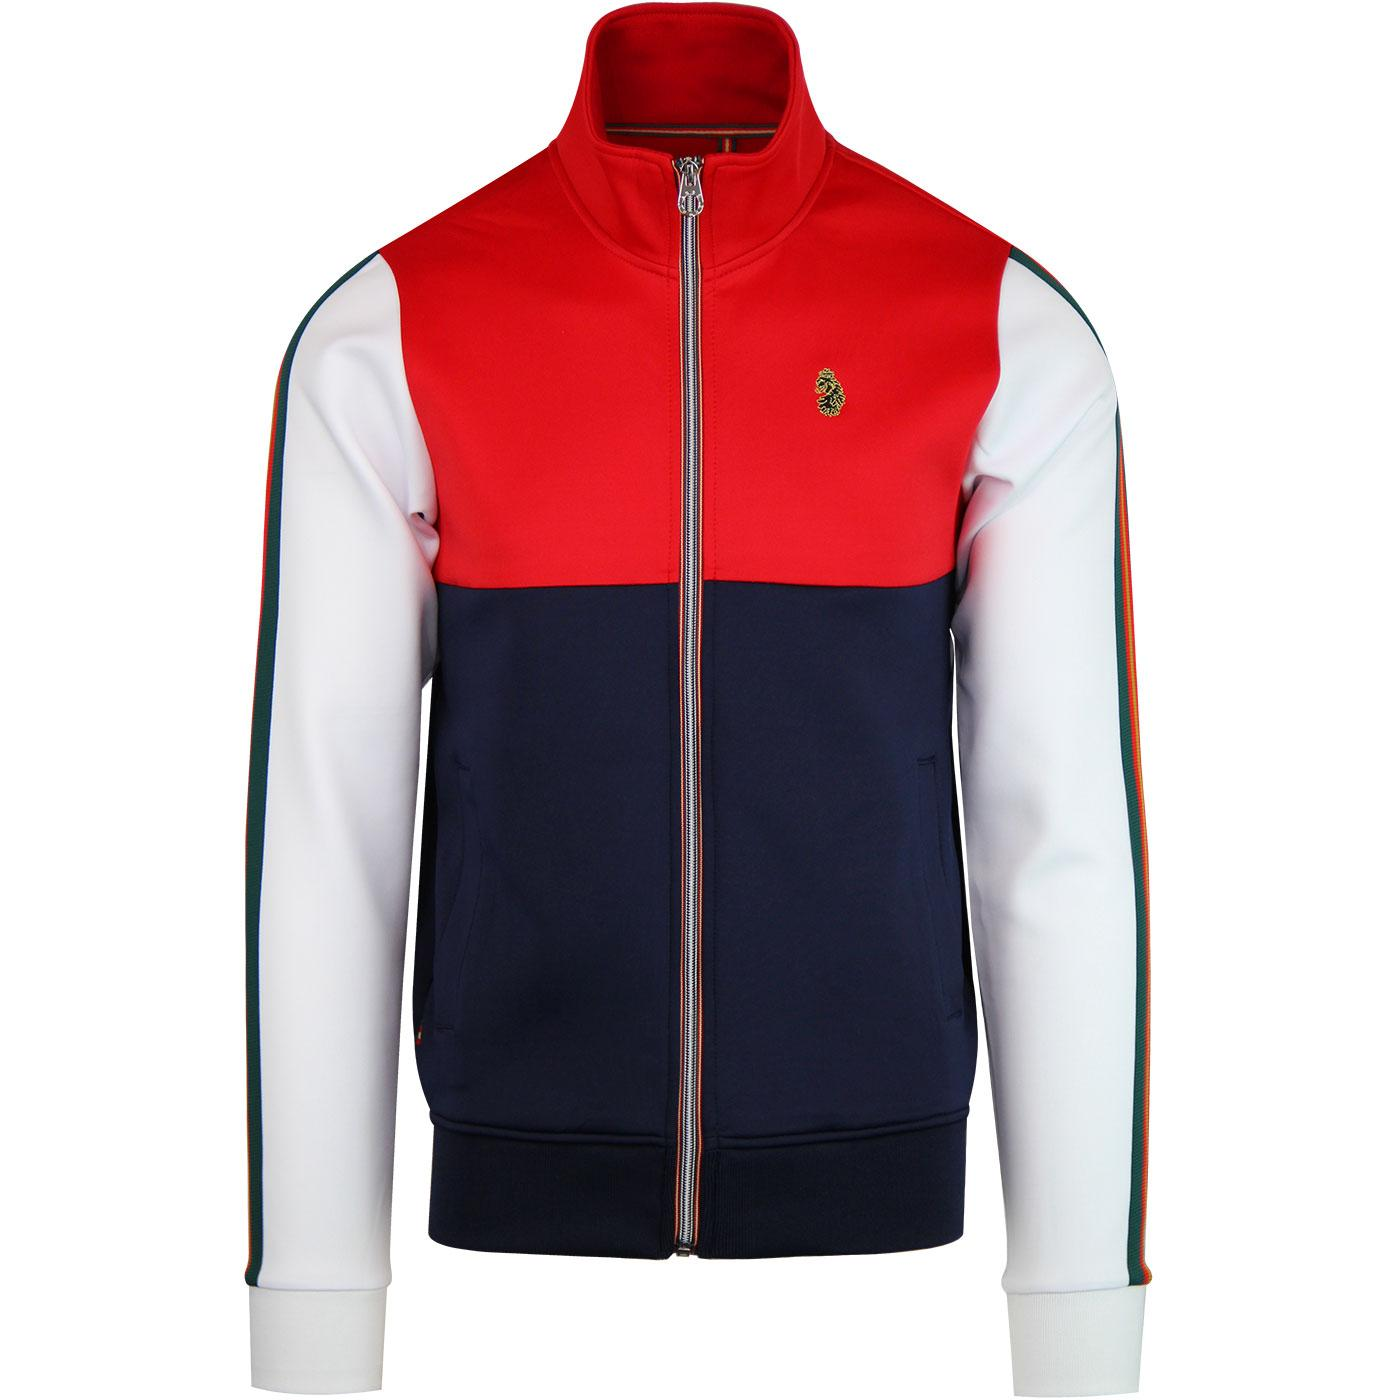 Hoddle LUKE Men's Retro 70s Sports Track Jacket